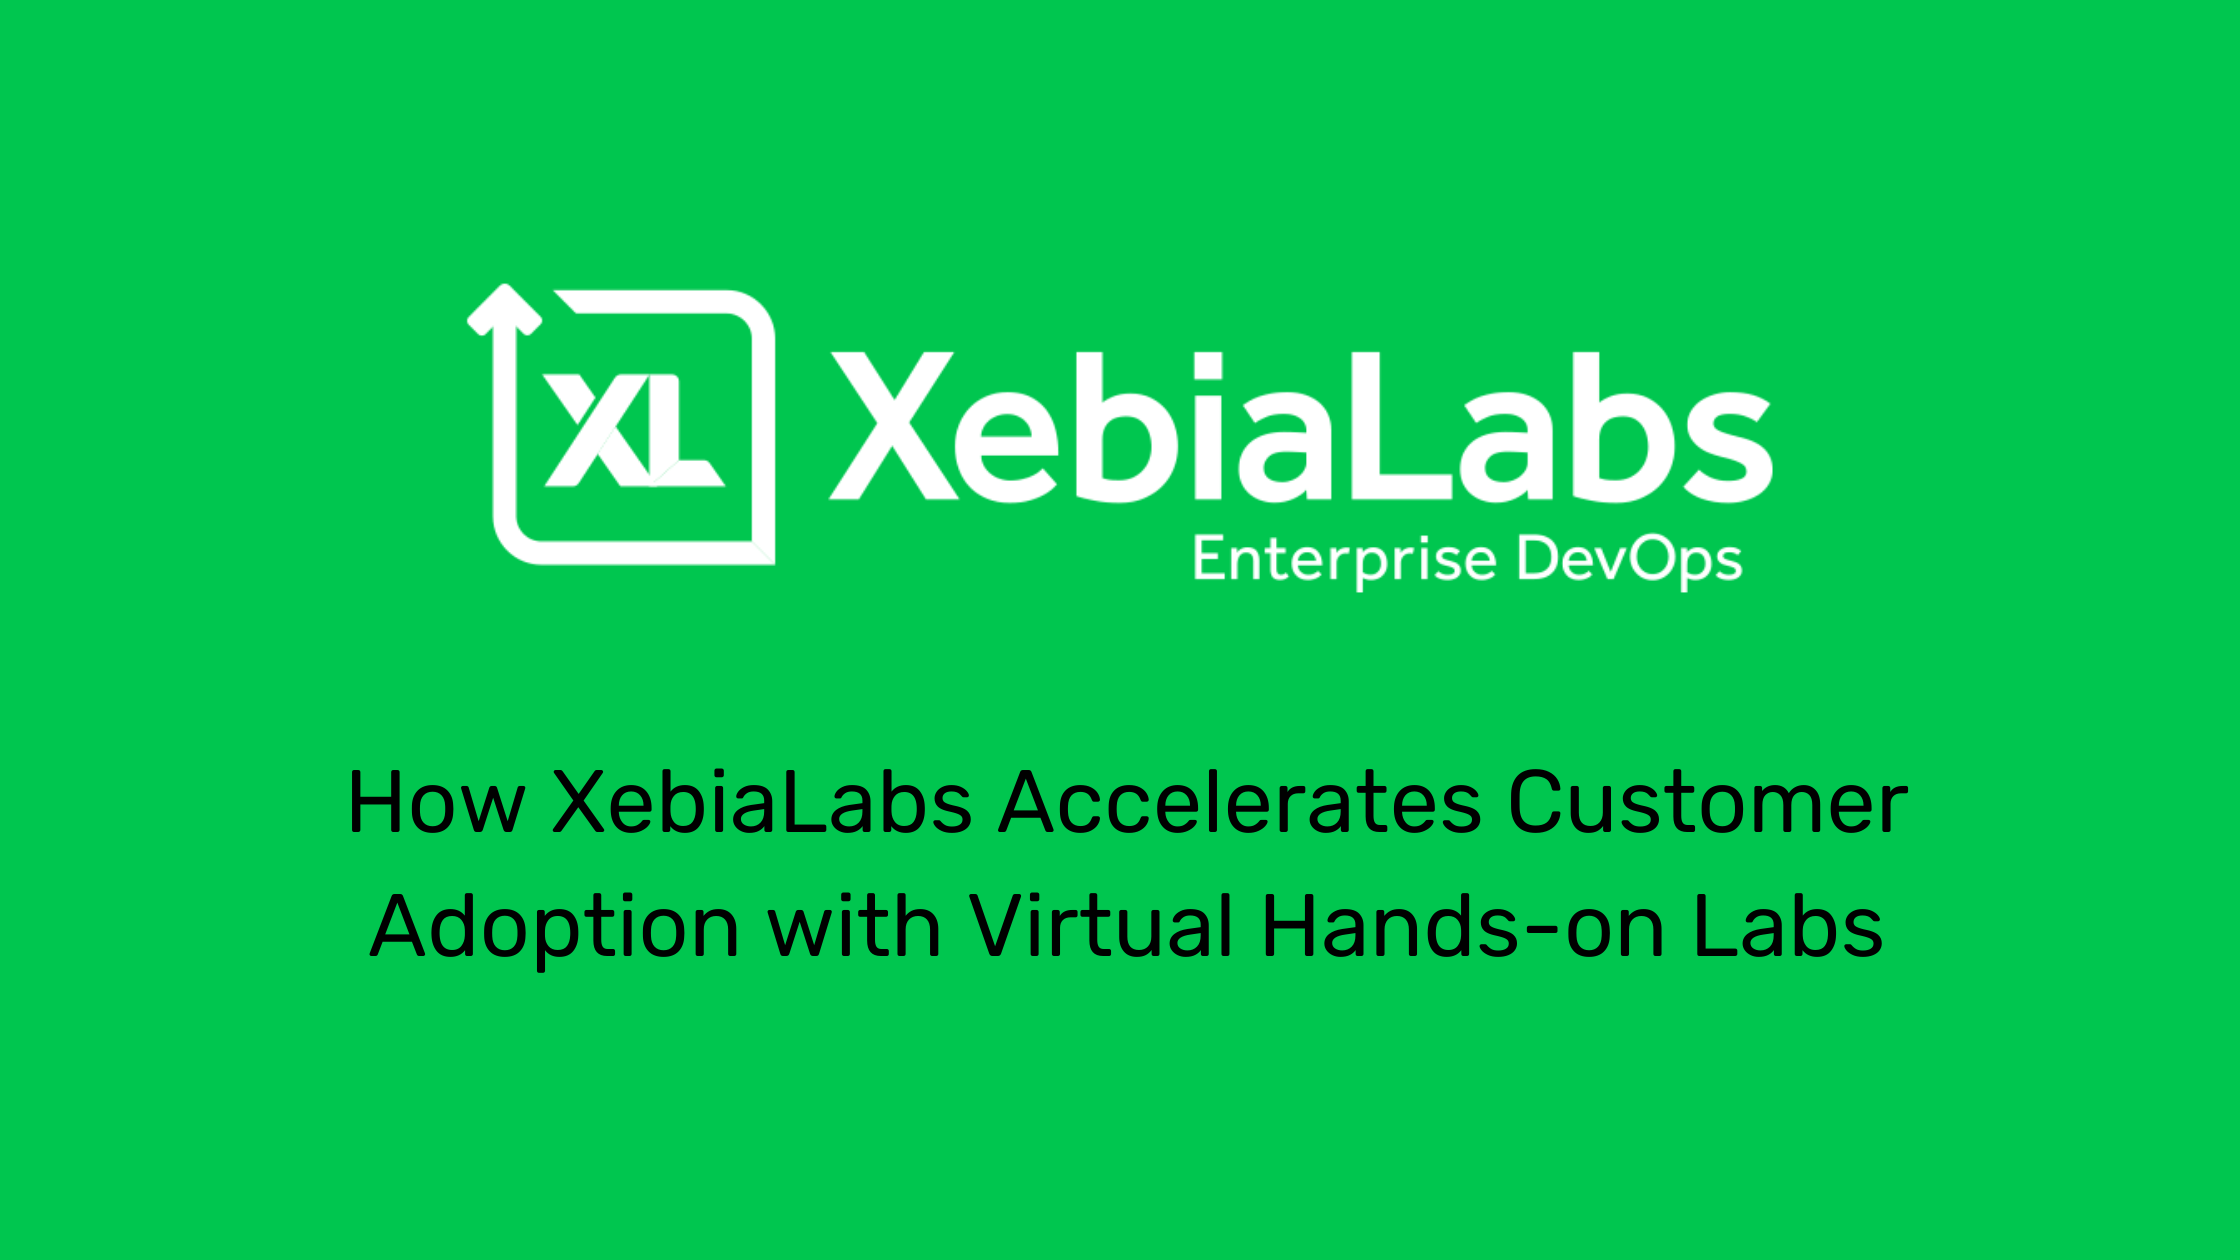 How XebiaLabs Accelerated Customer Adoption with Virtual Hands-on Labs